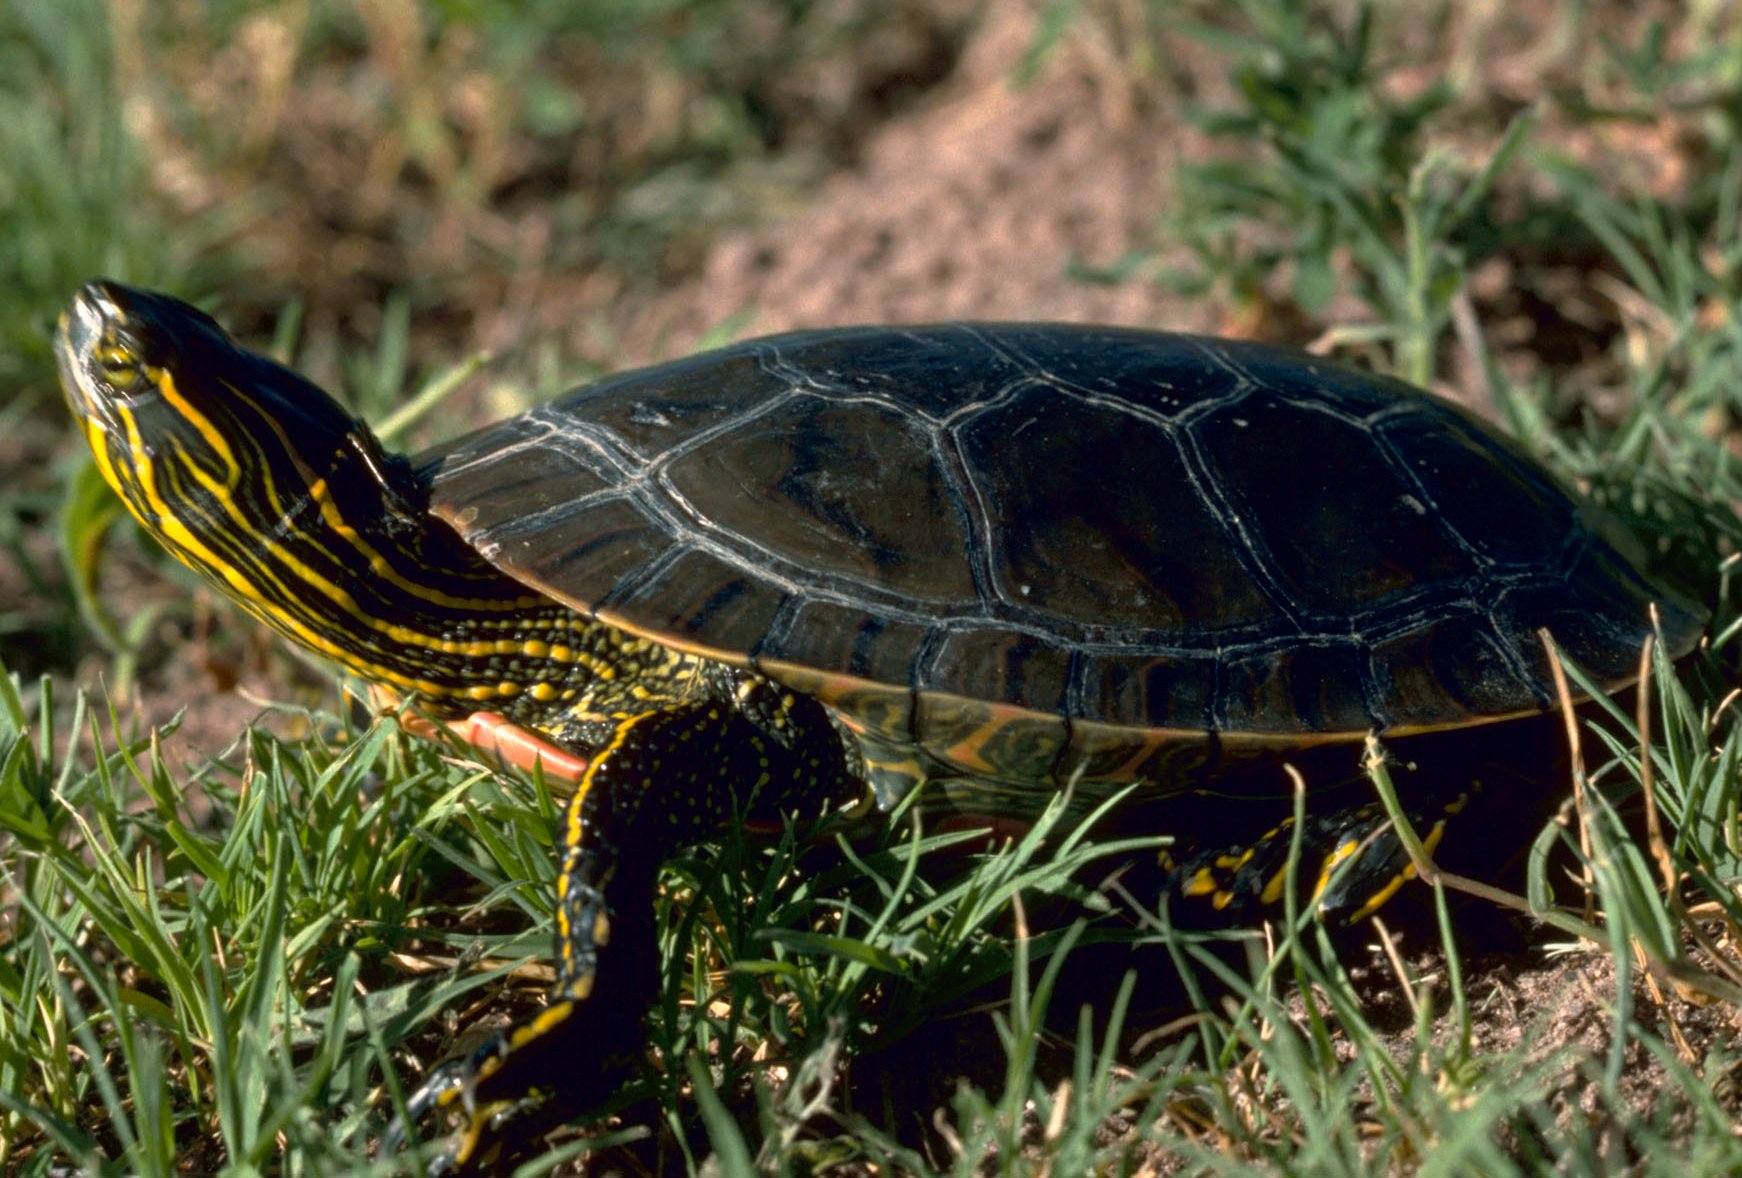 What Type Of Food Do South African Baby Turtles Eat